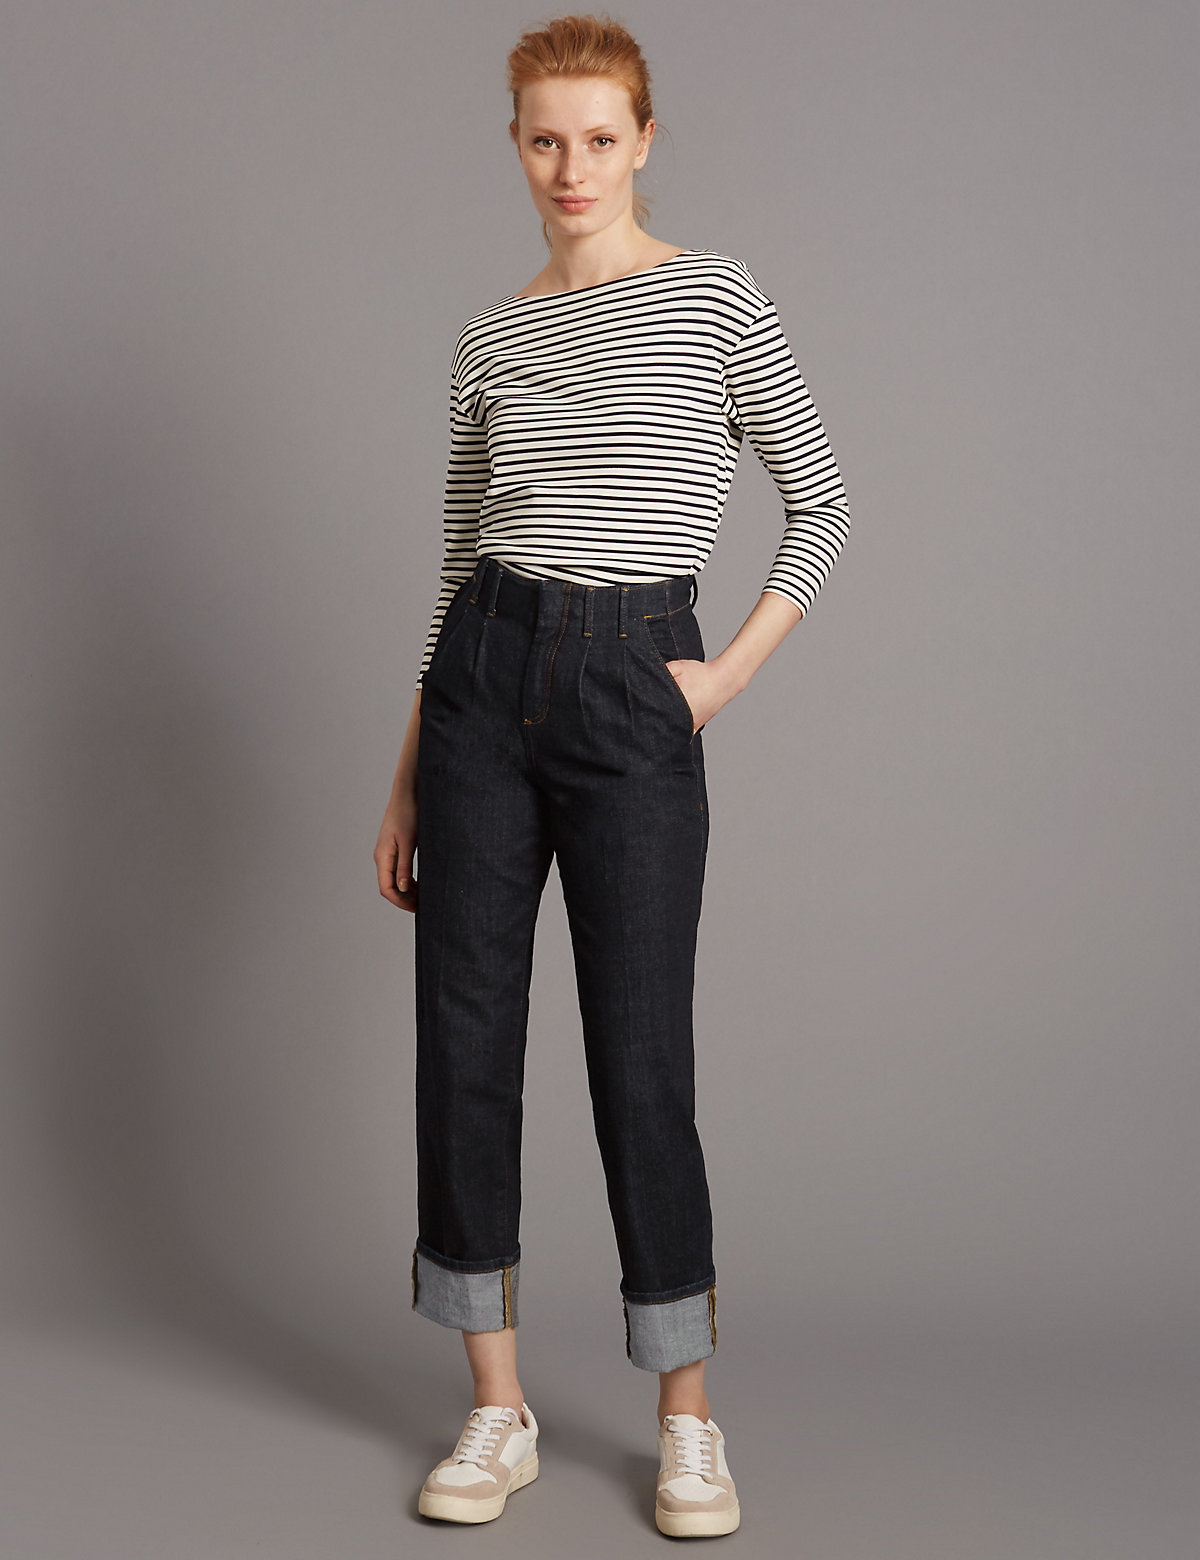 Autograph Smart Turn Up Mid Rise Straight Jeans Marks and Spencer P22508926